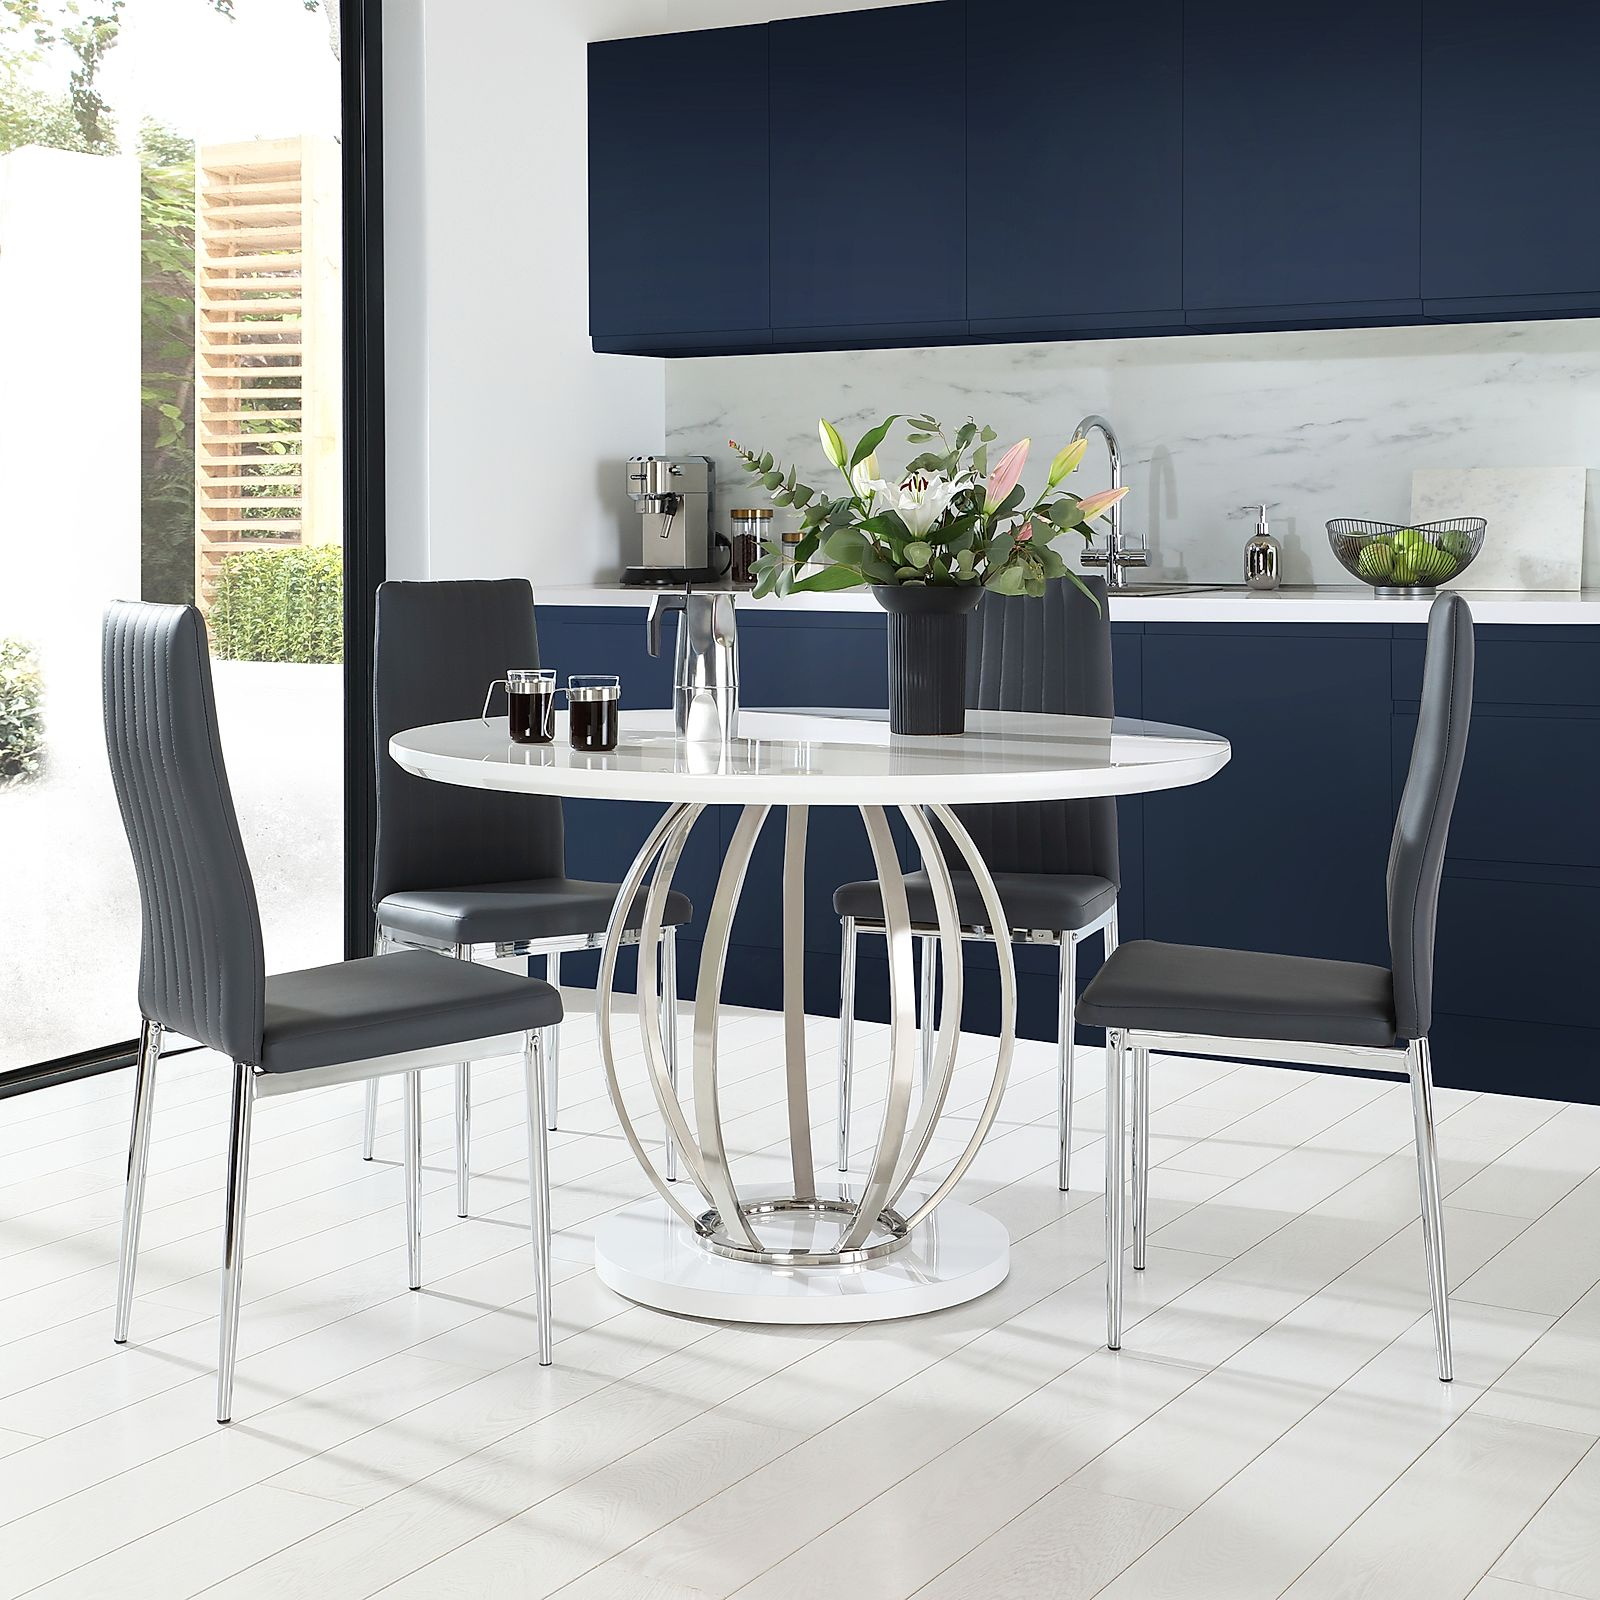 Gallery Savoy Round White High Gloss And Chrome Dining Table With 4 Leon